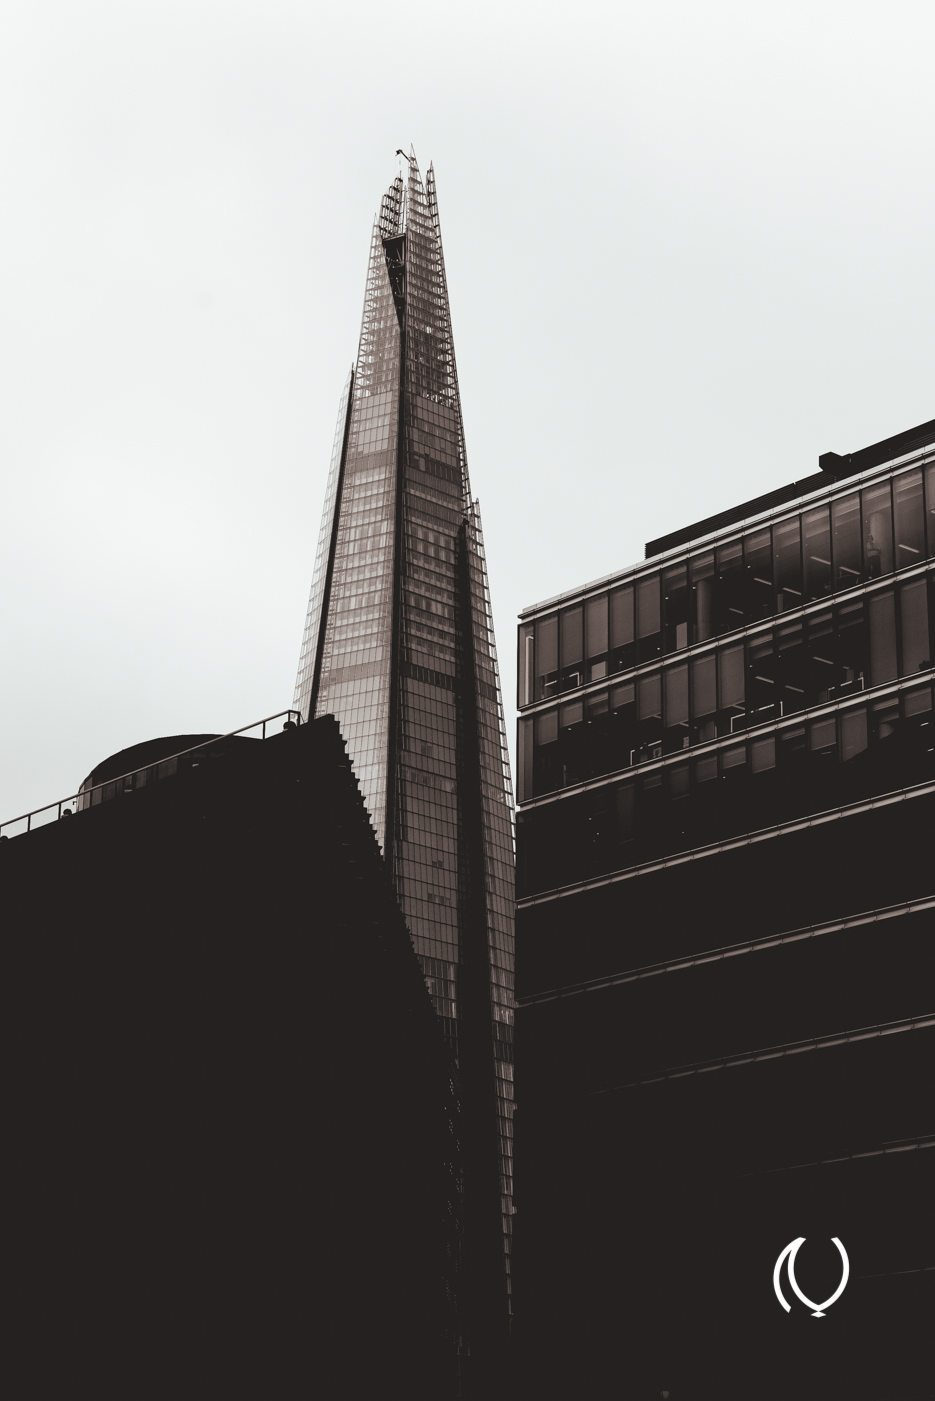 EyesForLondon-The-Shard-Naina.co-La-Raconteuse-Visuelle-Architecture-United-Kingdom